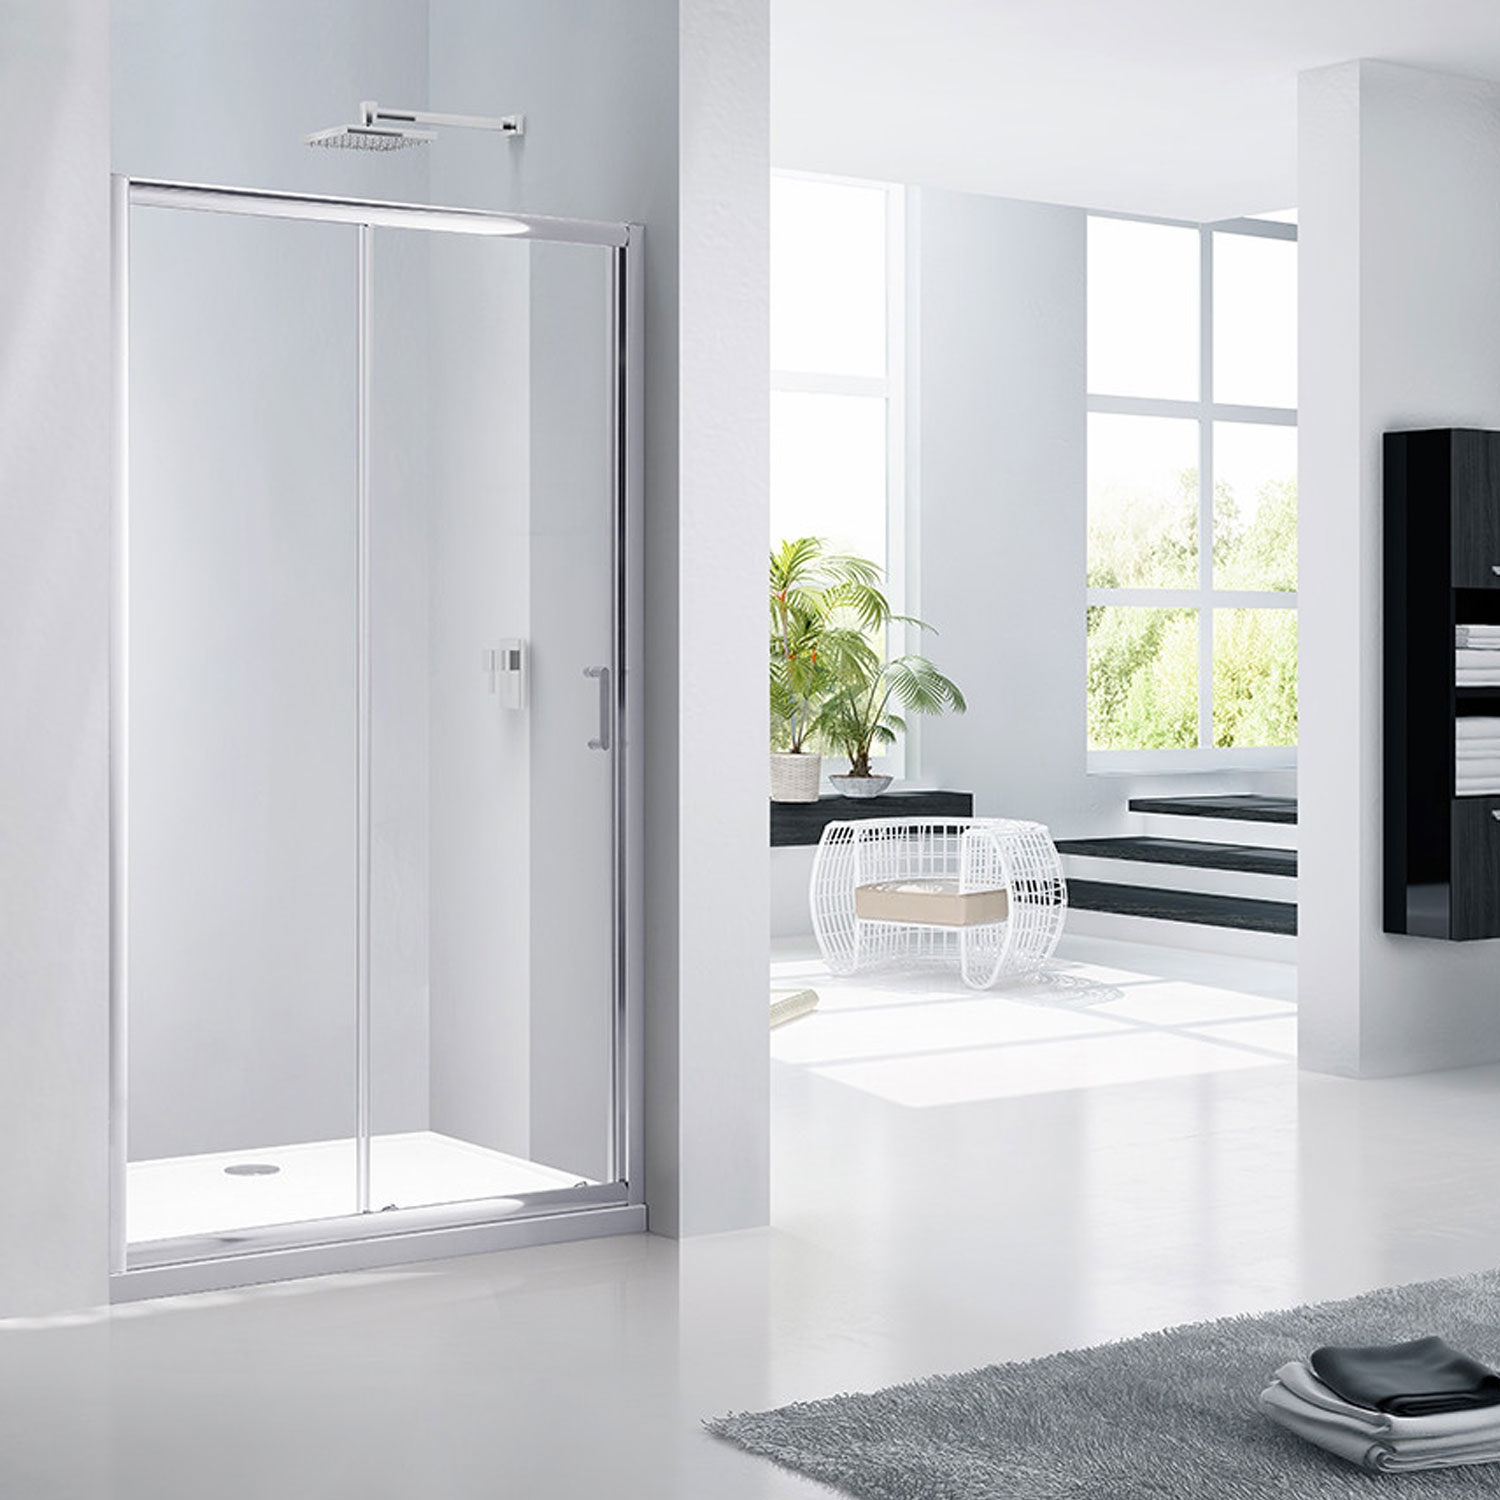 Verona Aquaglass Purity Sliding Shower Door 1500mm Wide - 6mm Glass-0